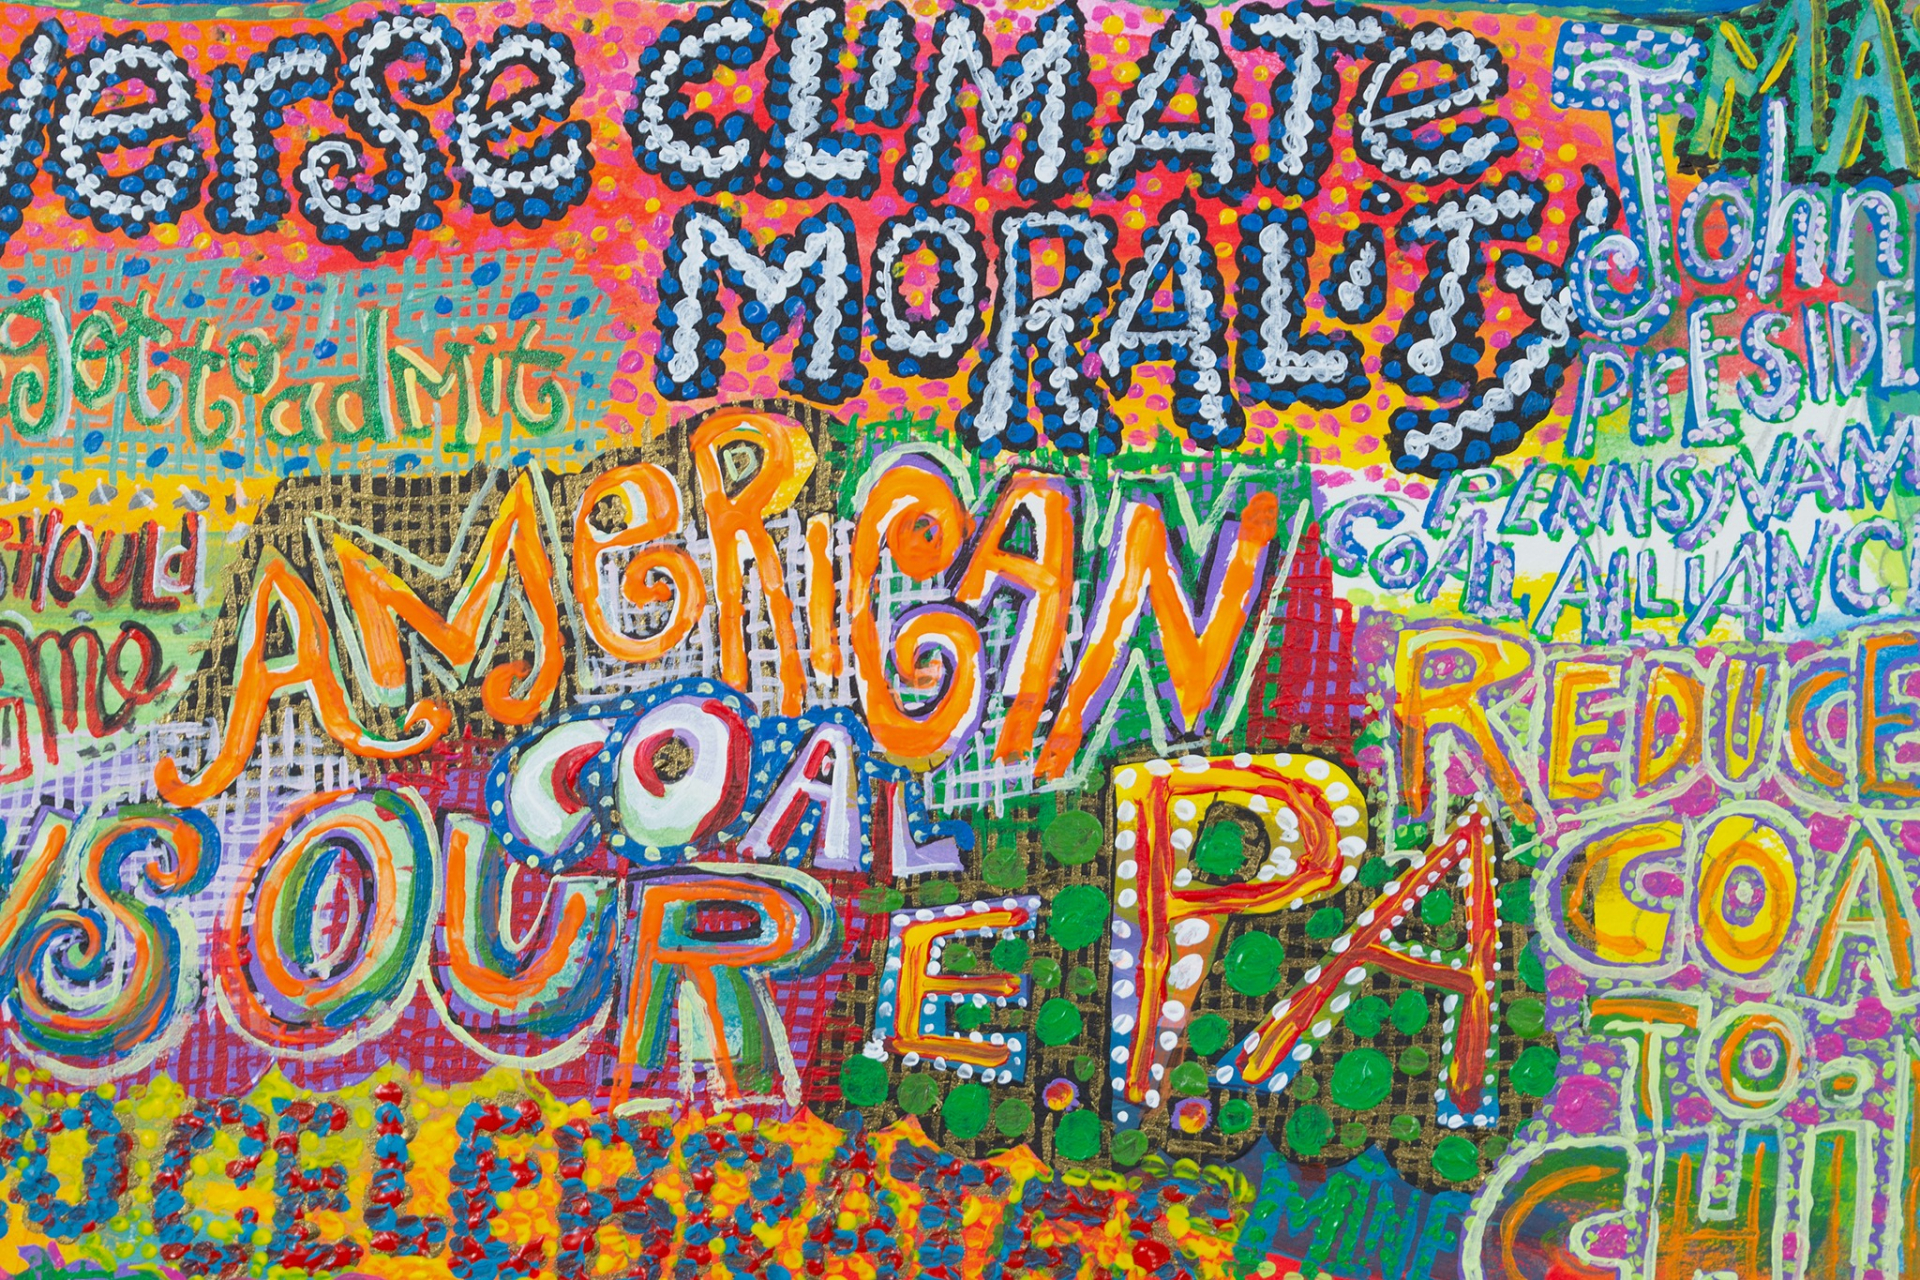 A detail of a painting by Bruce Burris titled Perverse Climate Morality, dated 2020.